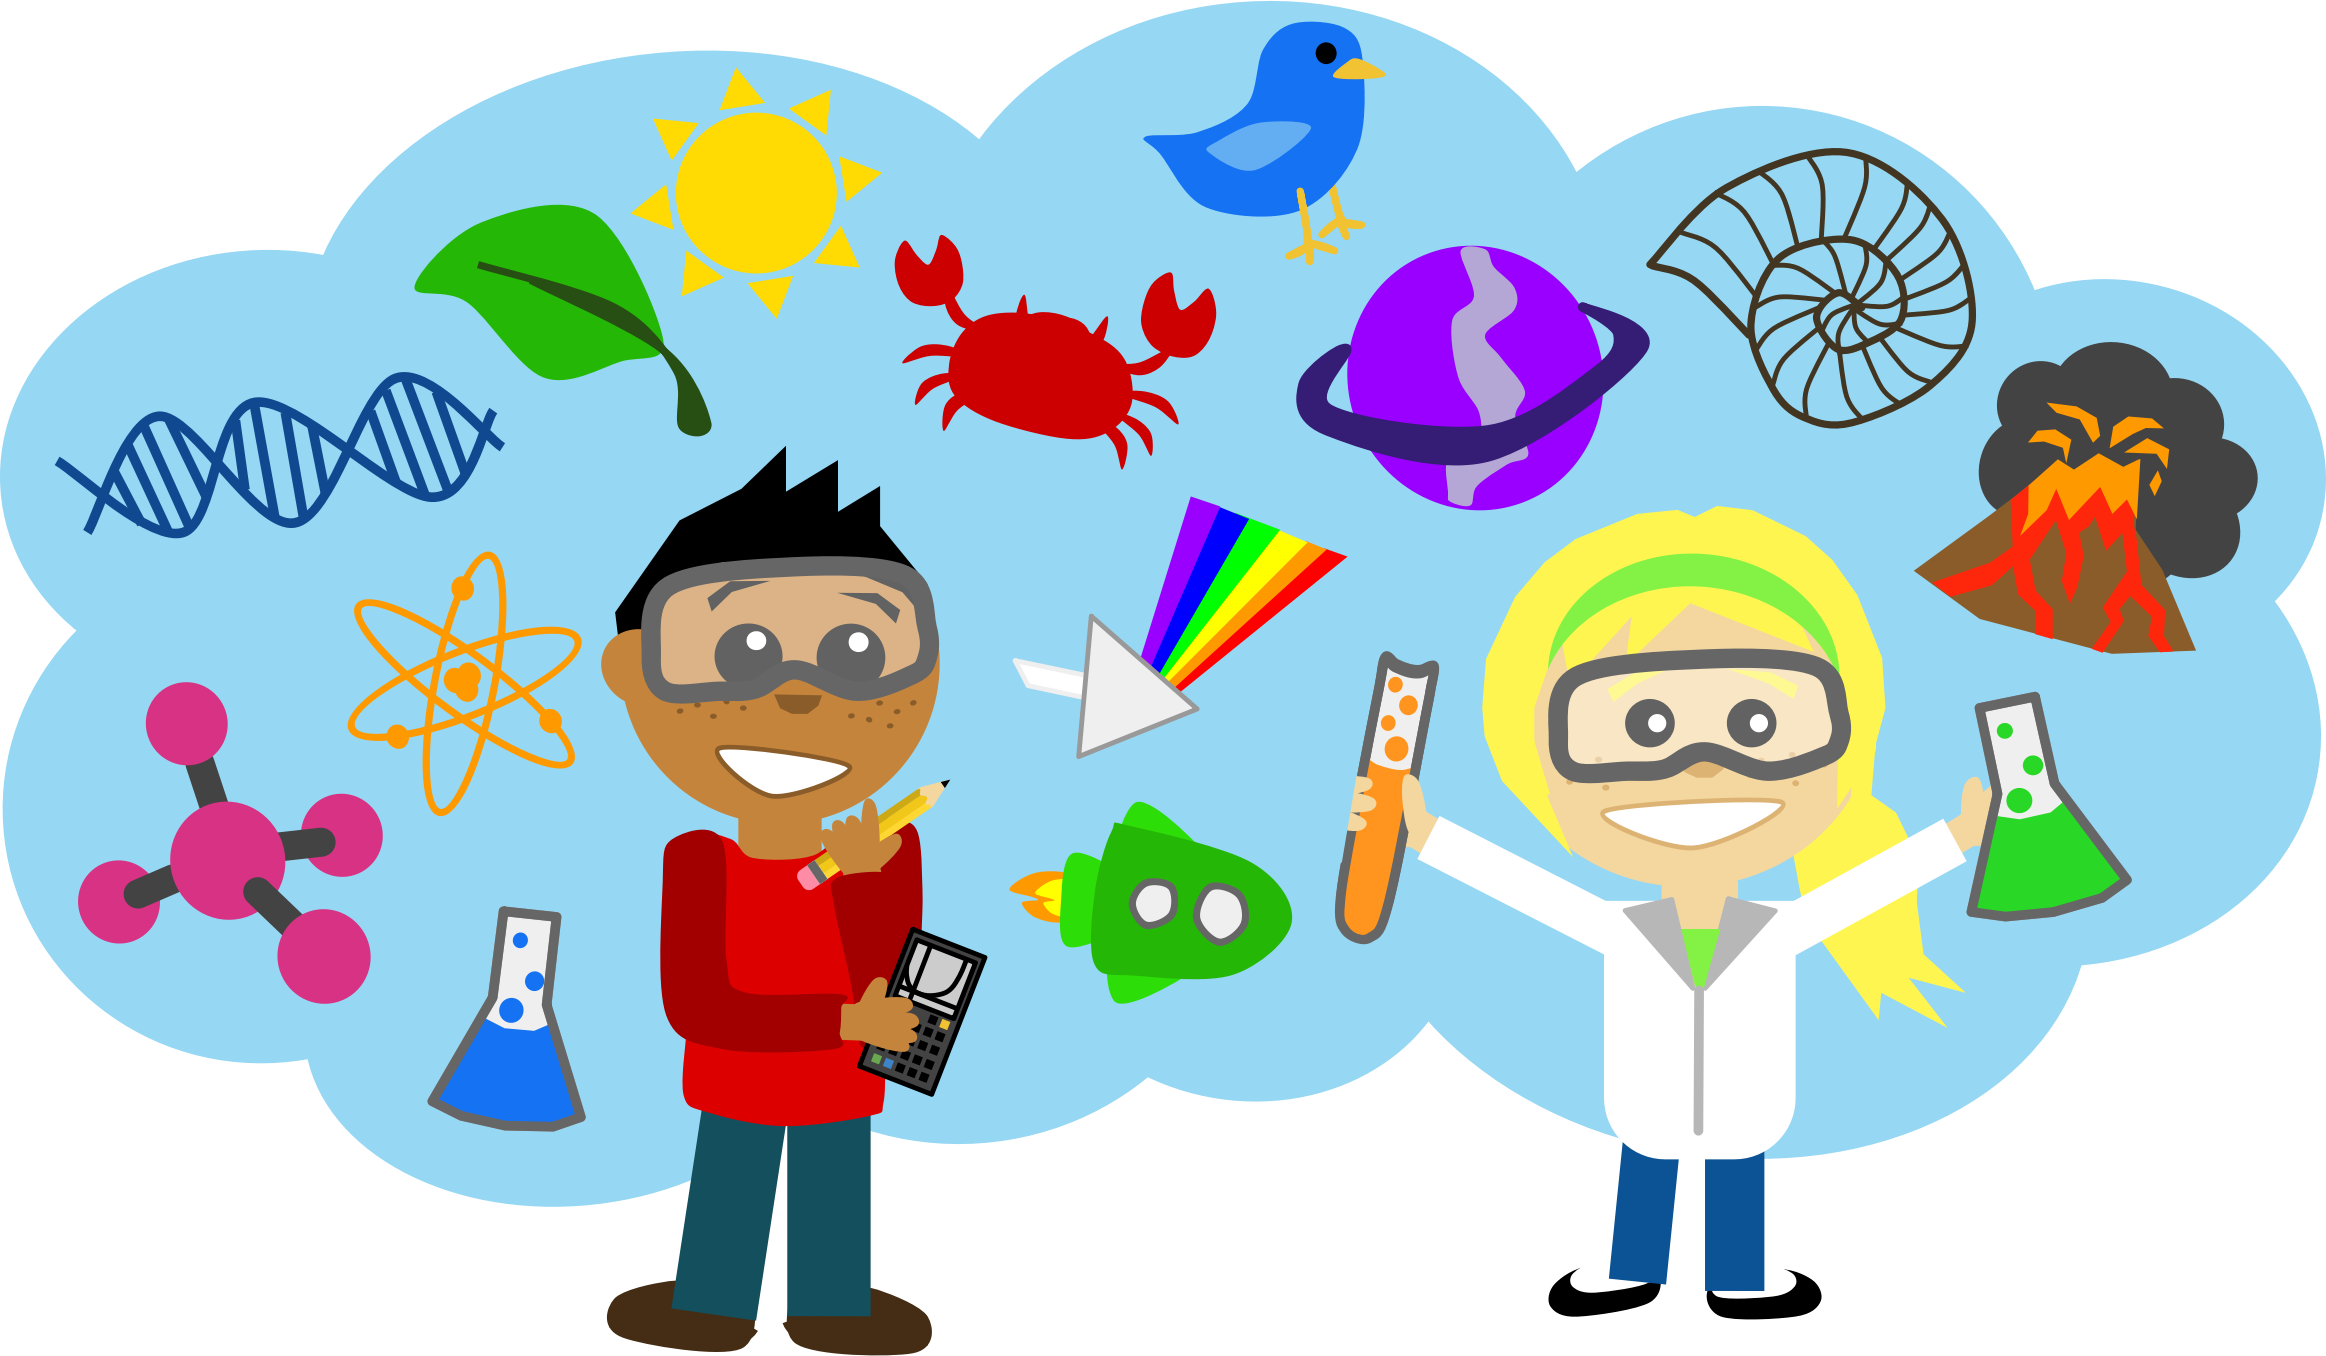 School discovery com clipart clipart library Clip art discovery kids png - Clipartix clipart library